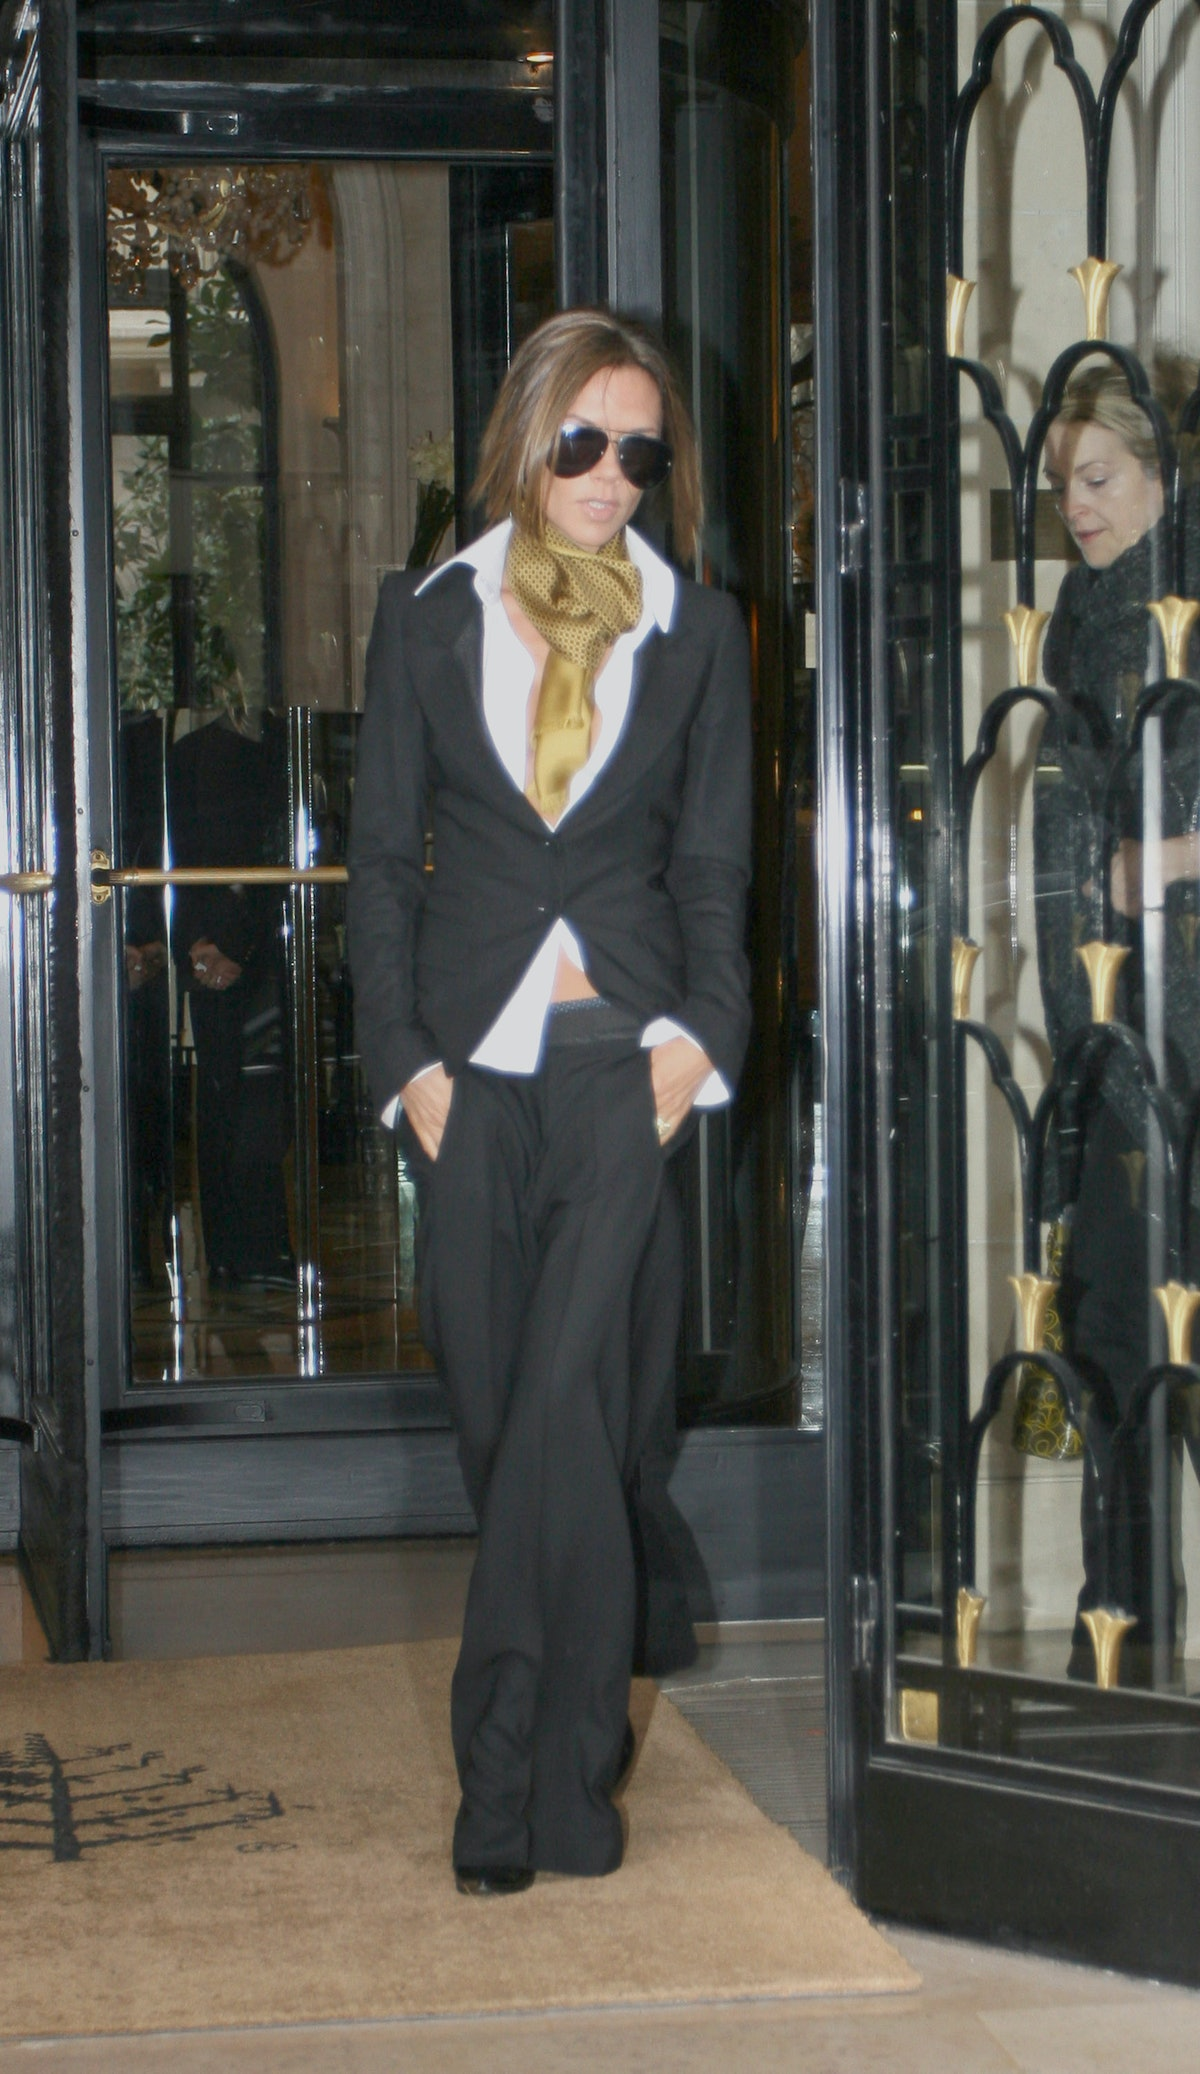 Victoria Beckham and Katie Holmes Sighting in Paris - January 23, 2007